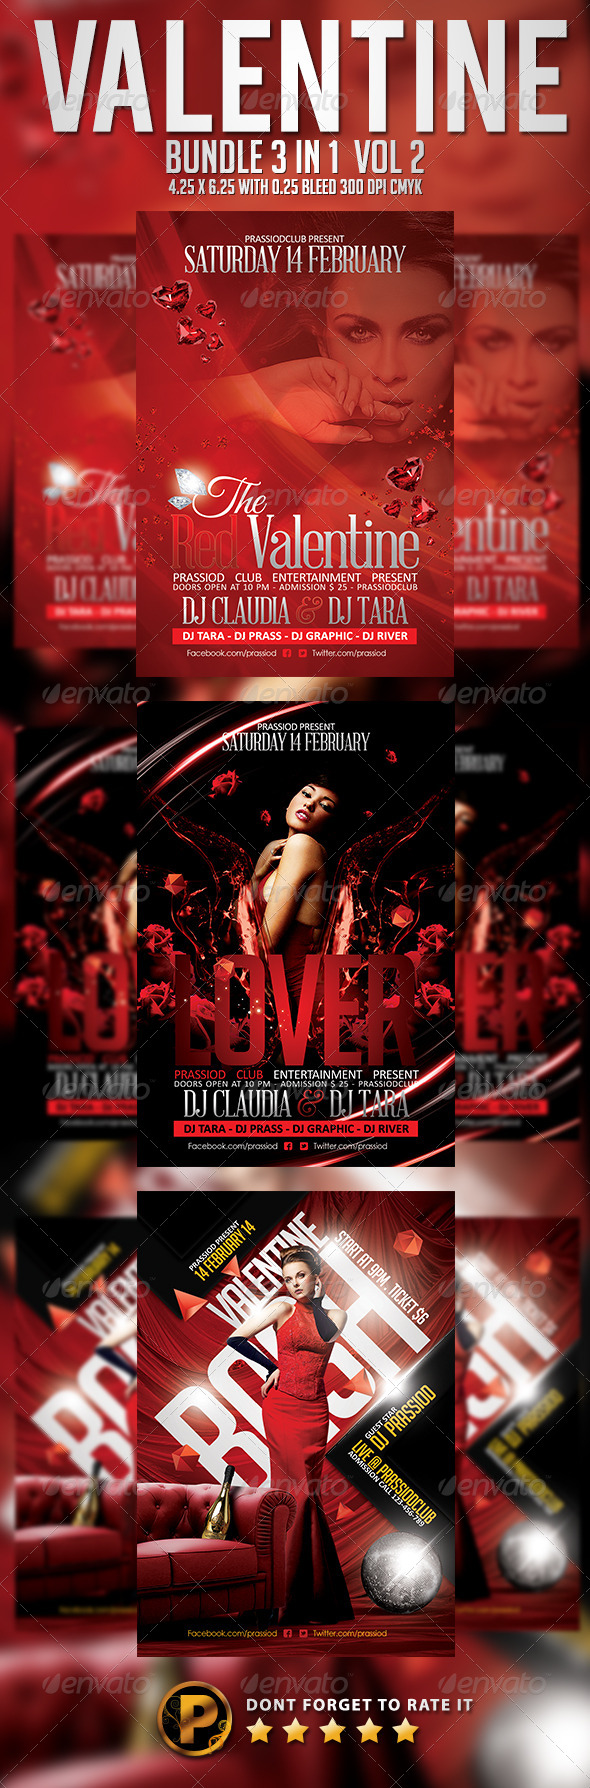 Valentine Flyer Template - Bundle 3 In 1 Vol 2 - Clubs & Parties Events